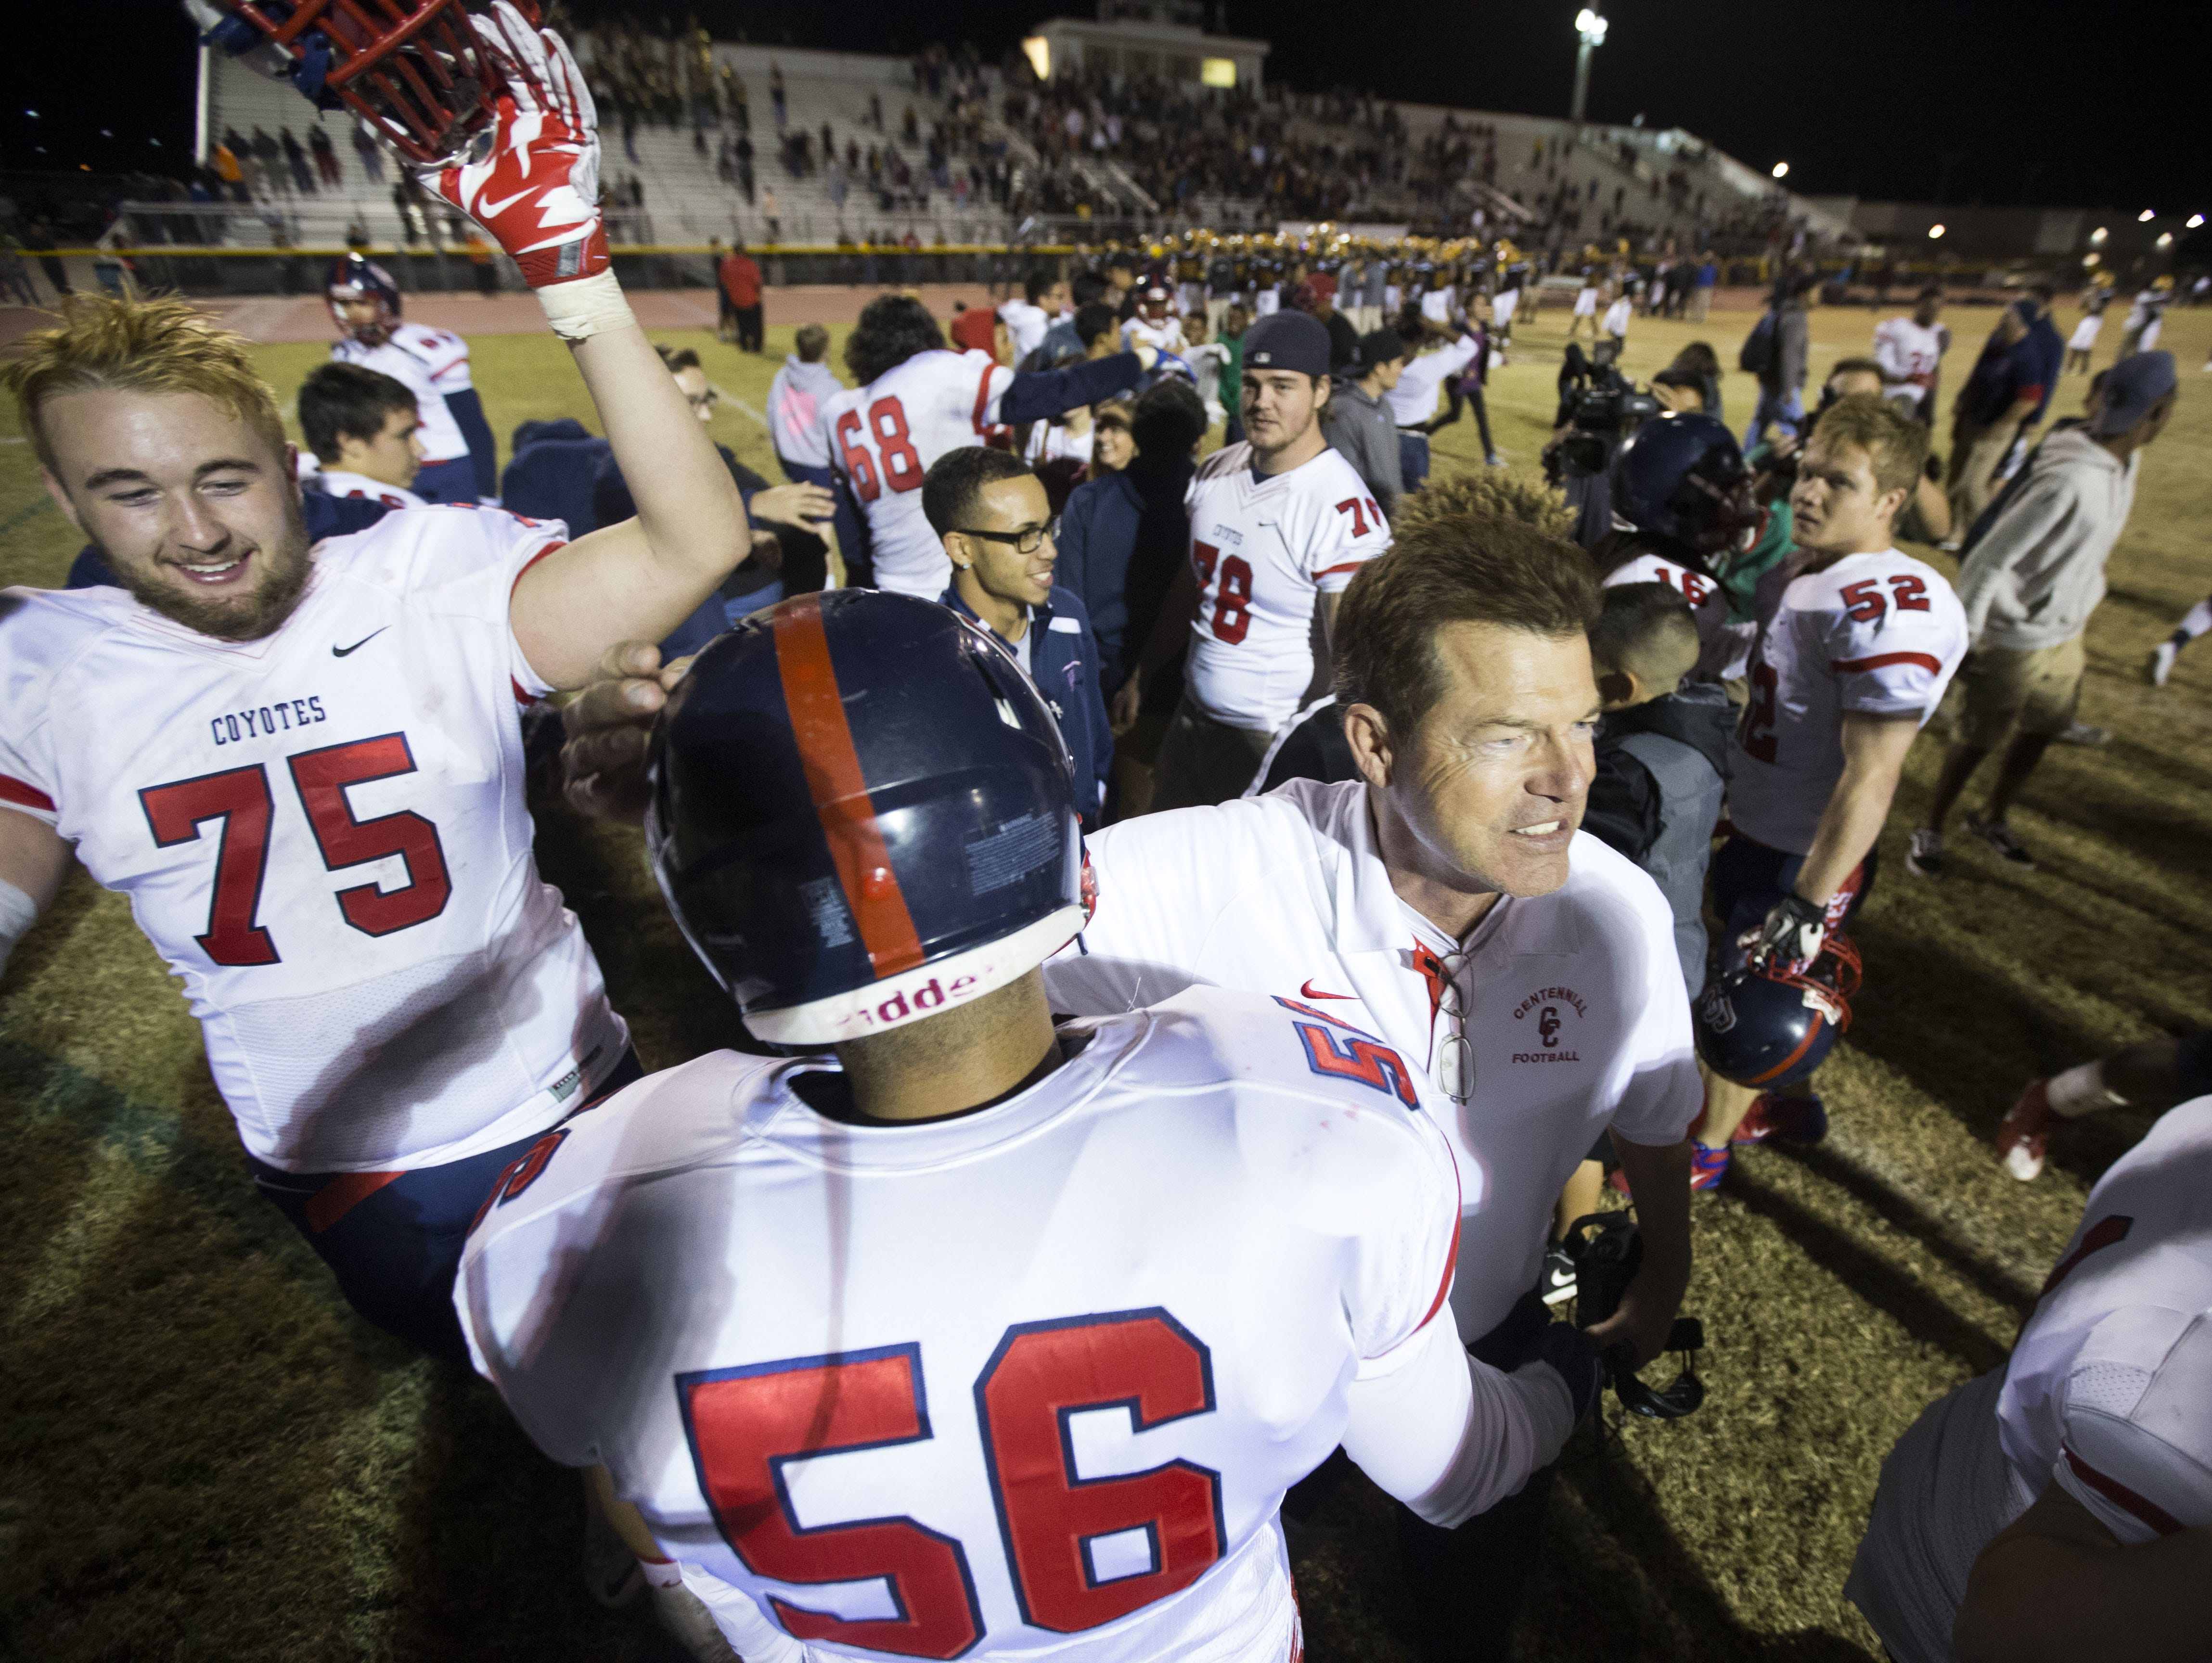 Centennial's head coach Richard Taylor celebrates with Franky Ortiz (56) and Tanner Hawthorne (75) after a 31-21 win over Mountain Pointe during the Division I state semifinals at Desert Vista High School in Phoenix, AZ on November 20, 2015.